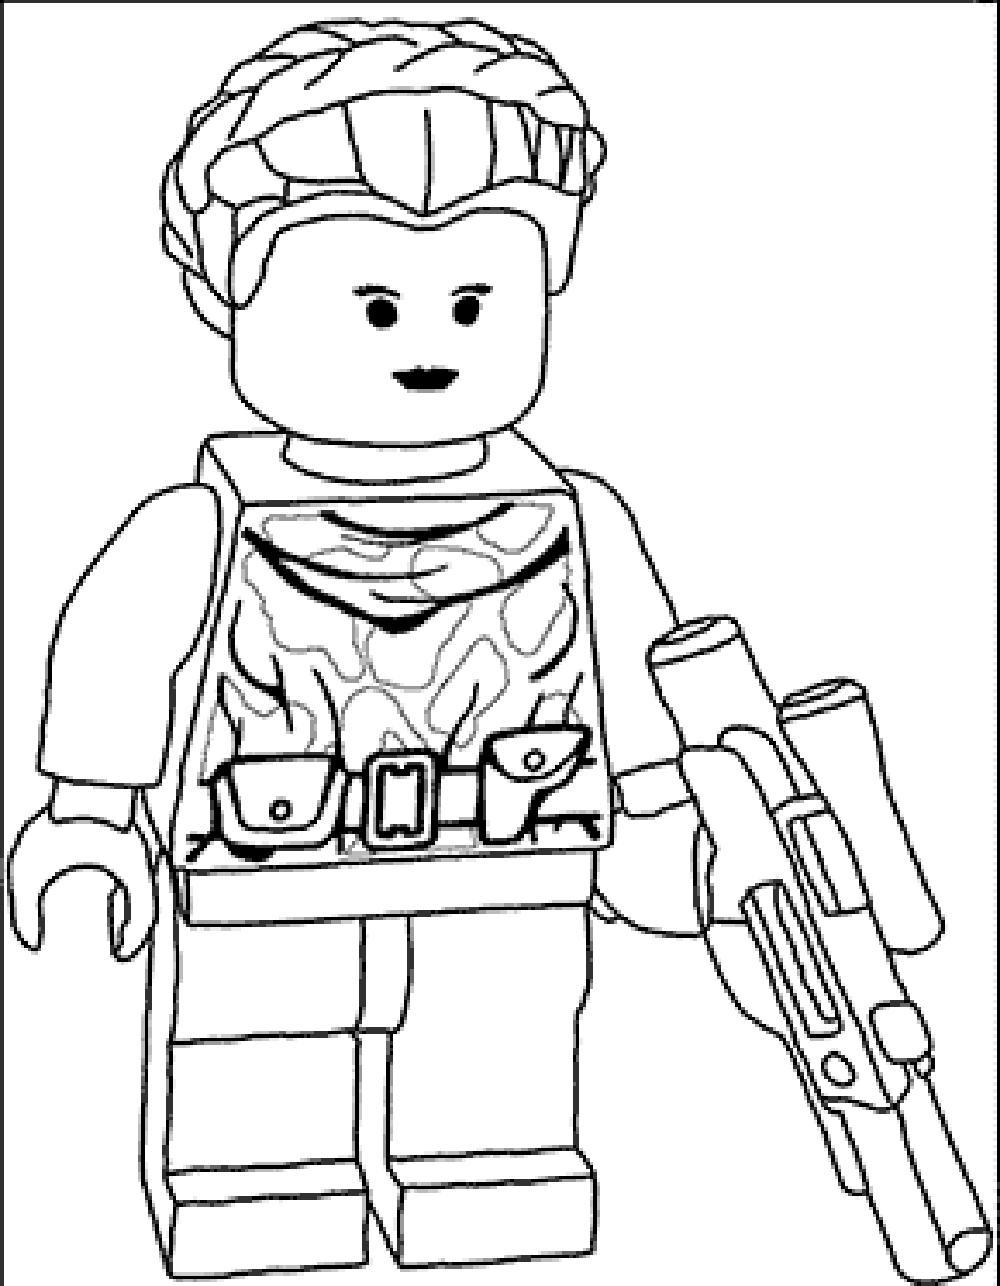 printable lego star wars coloring pages star wars free printable coloring pages for adults kids coloring printable pages star lego wars